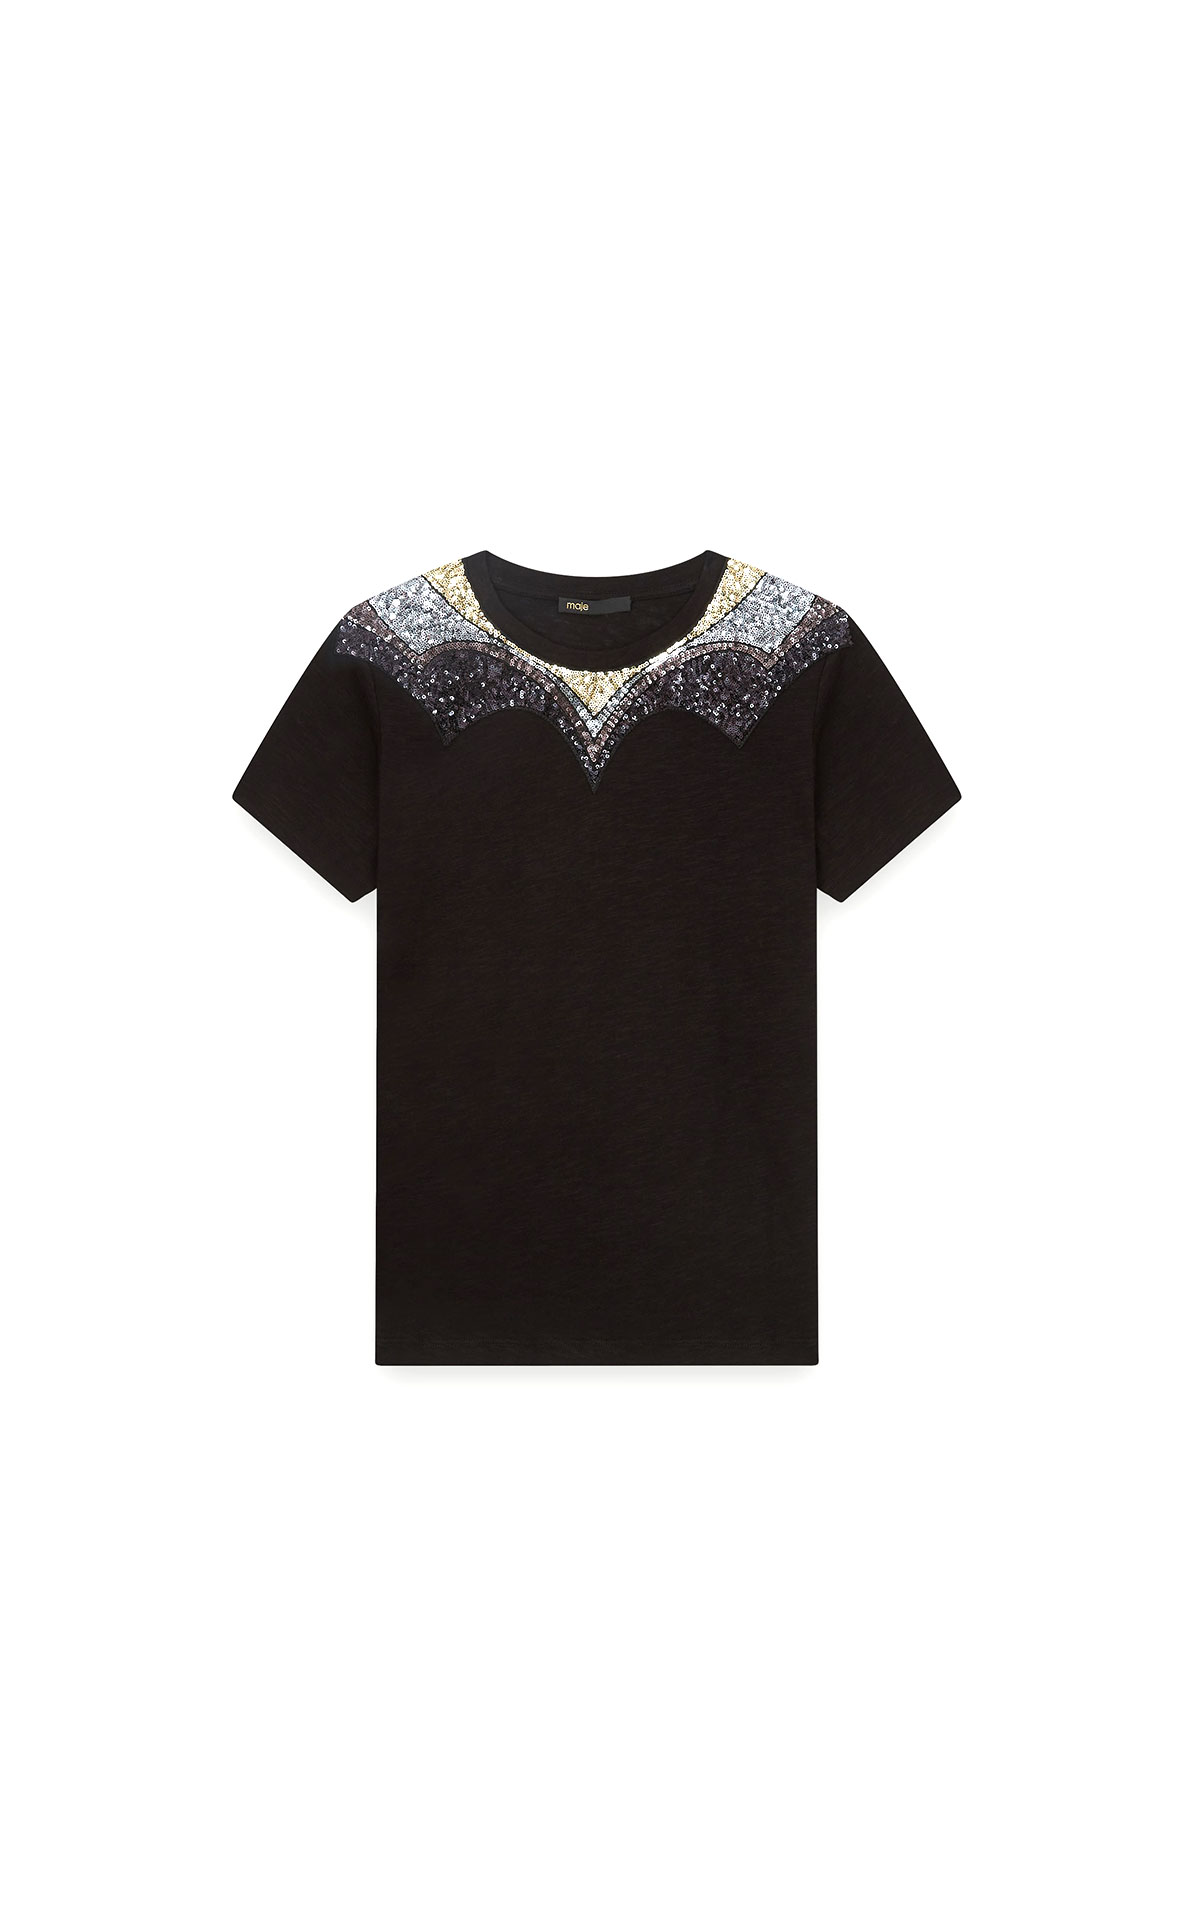 Maje Jersey t-shirt with sequins in black/multicoloured at The Bicester Village Shopping Collection